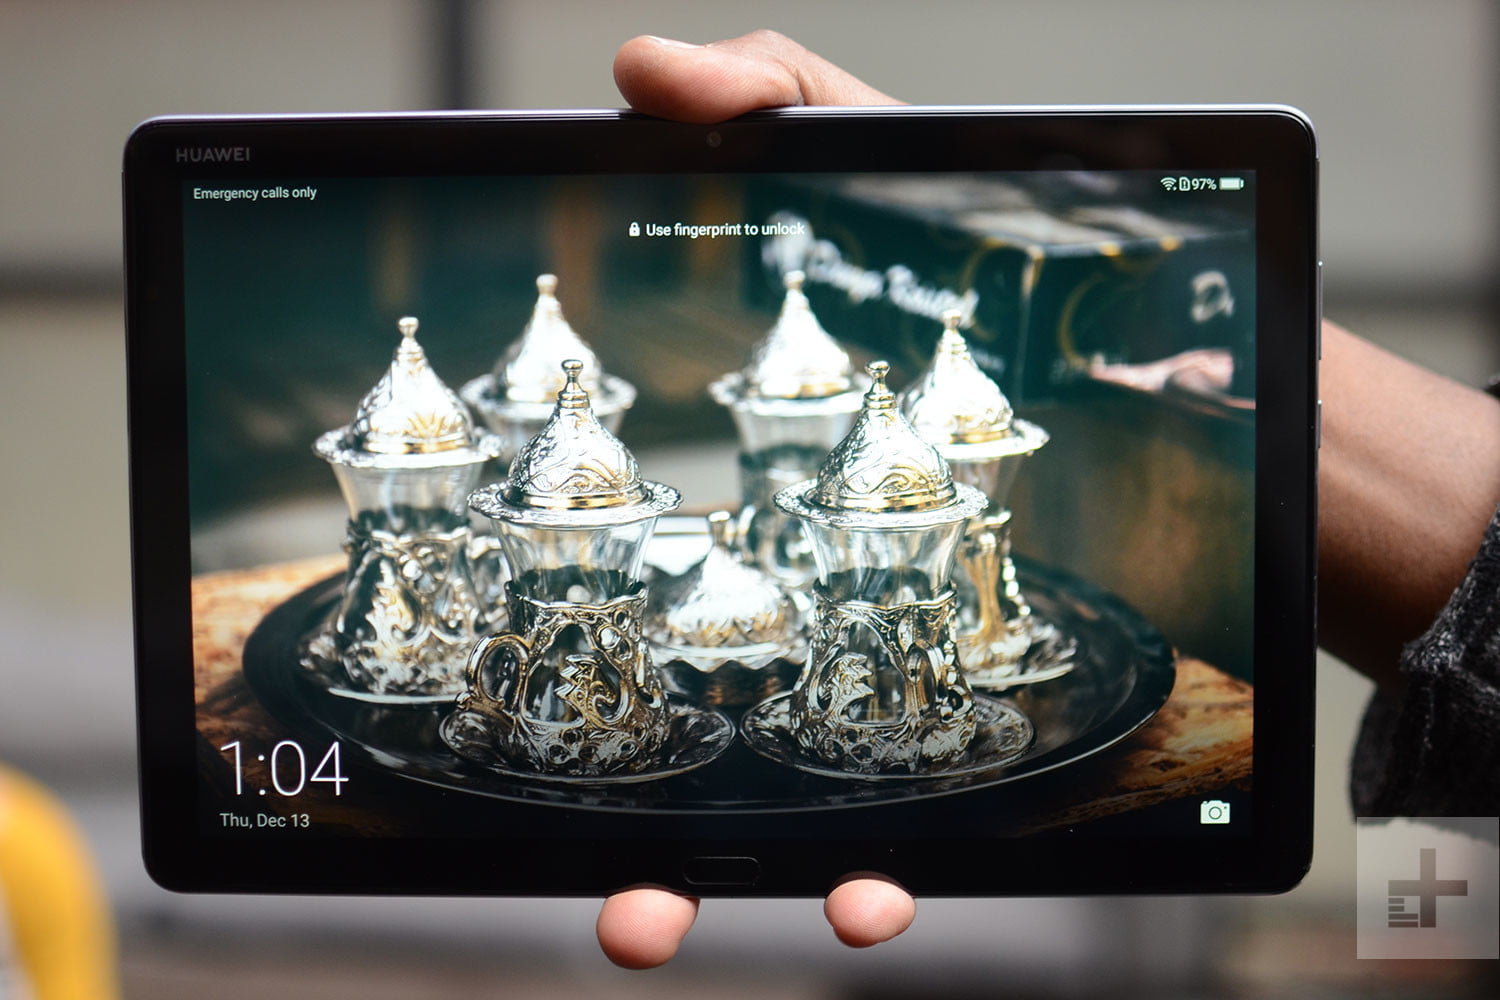 CES 2019: The Huawei MatePad M5 Lite is a Smart Tablet At a